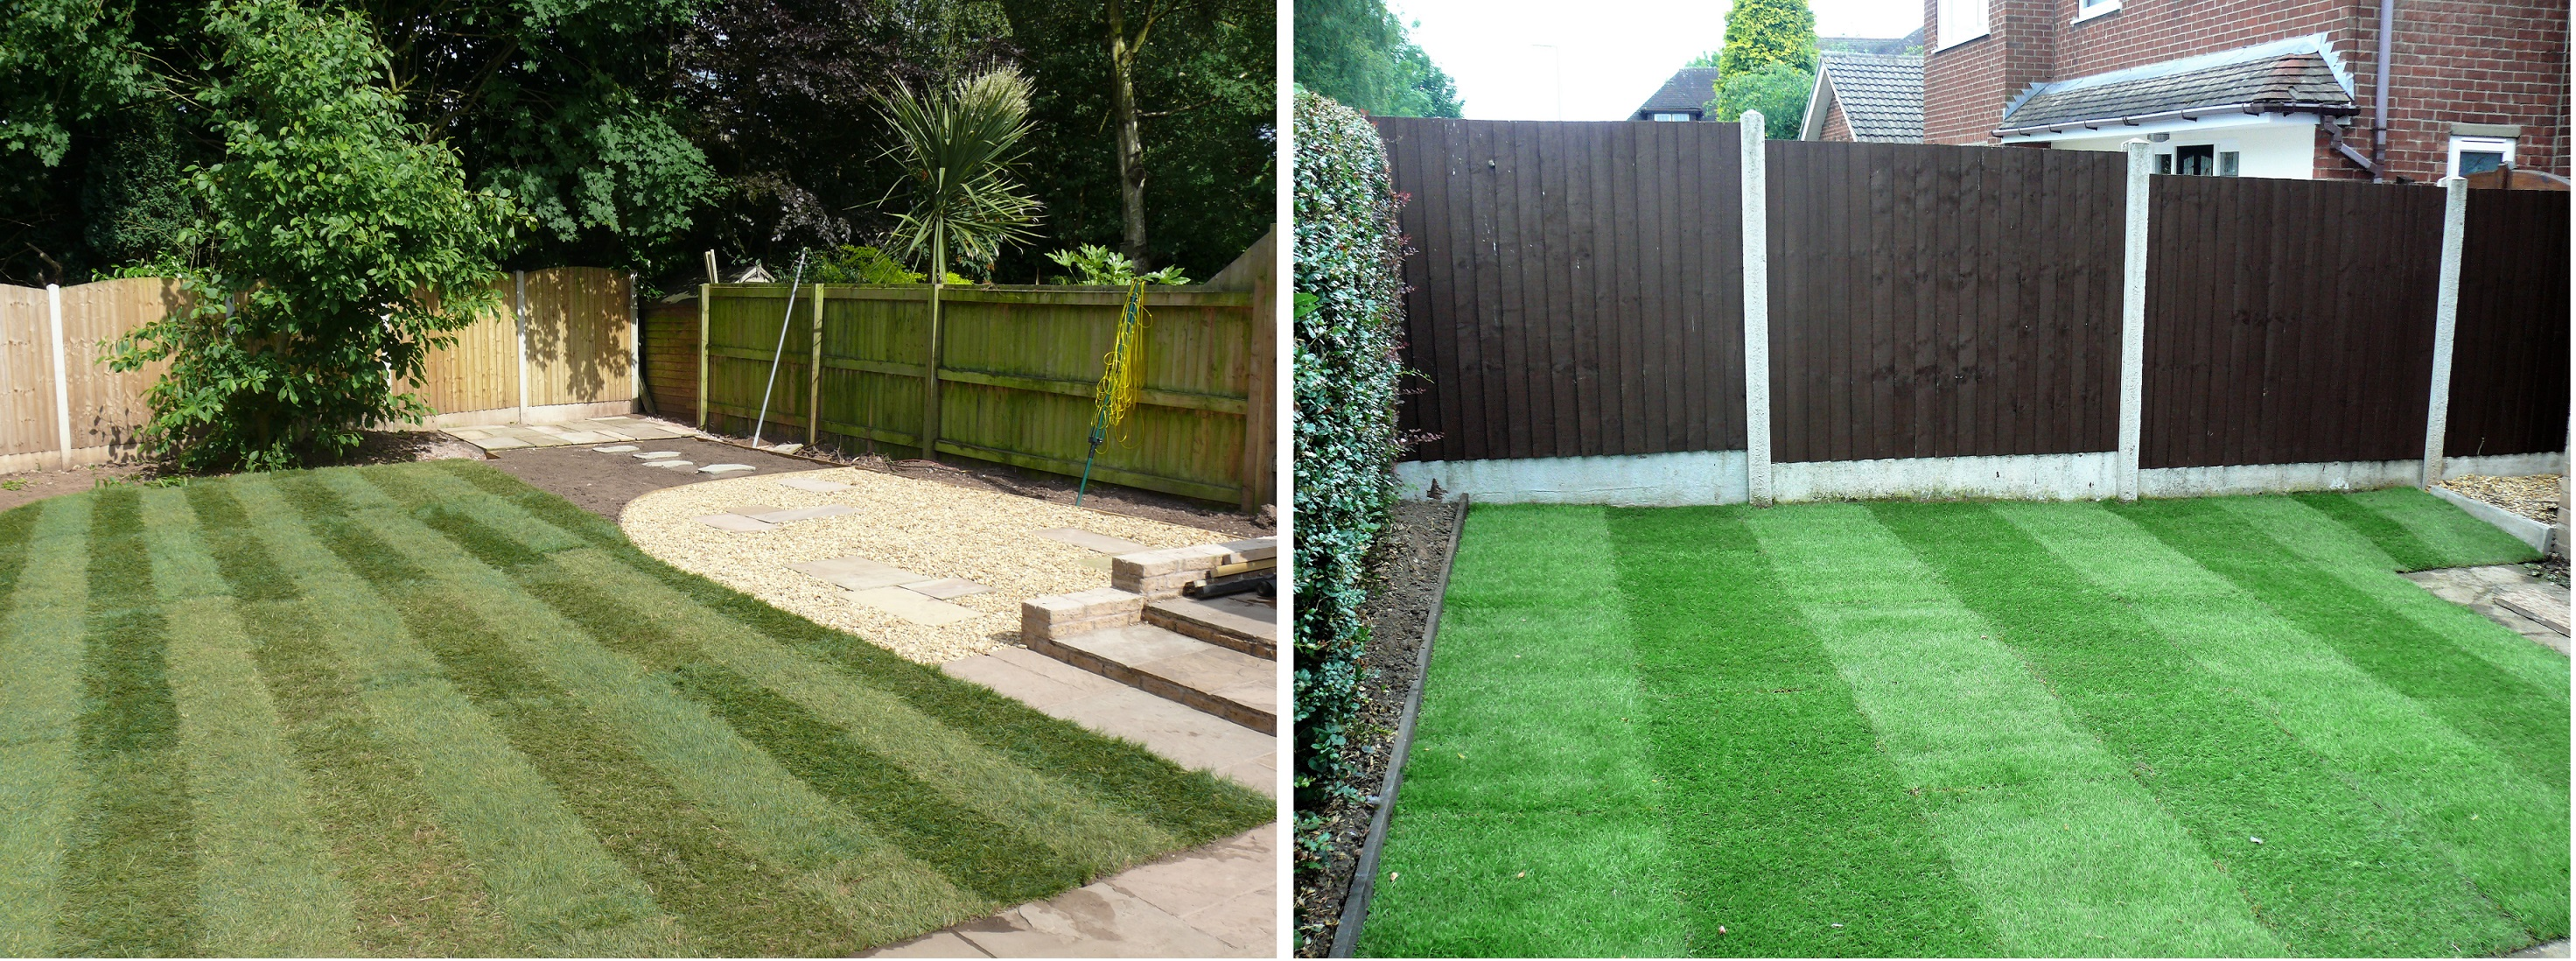 Turfing Completed - Landscaping in Blythe Bridge